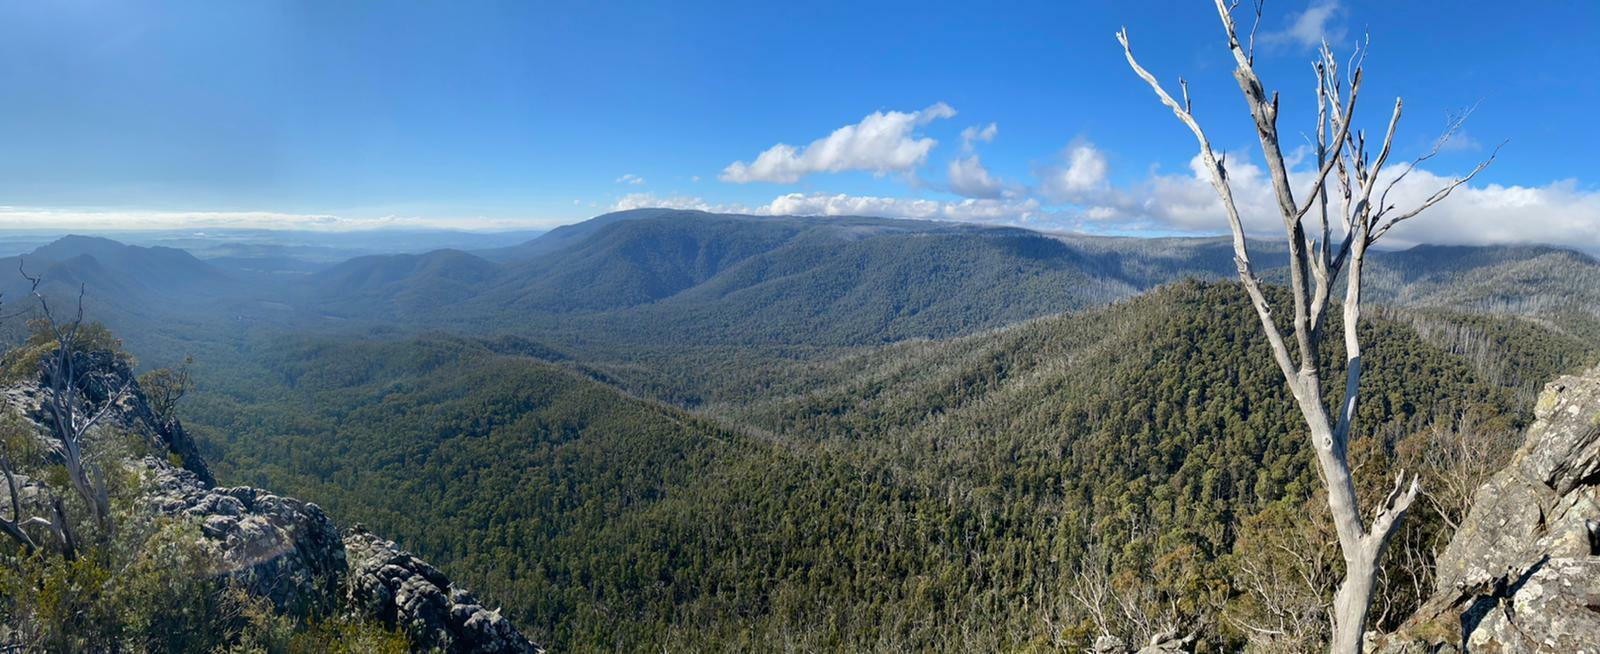 The Best Day Trips From Melbourne, Arden Haar, Sugarloaf Peak, mountains, forest, view